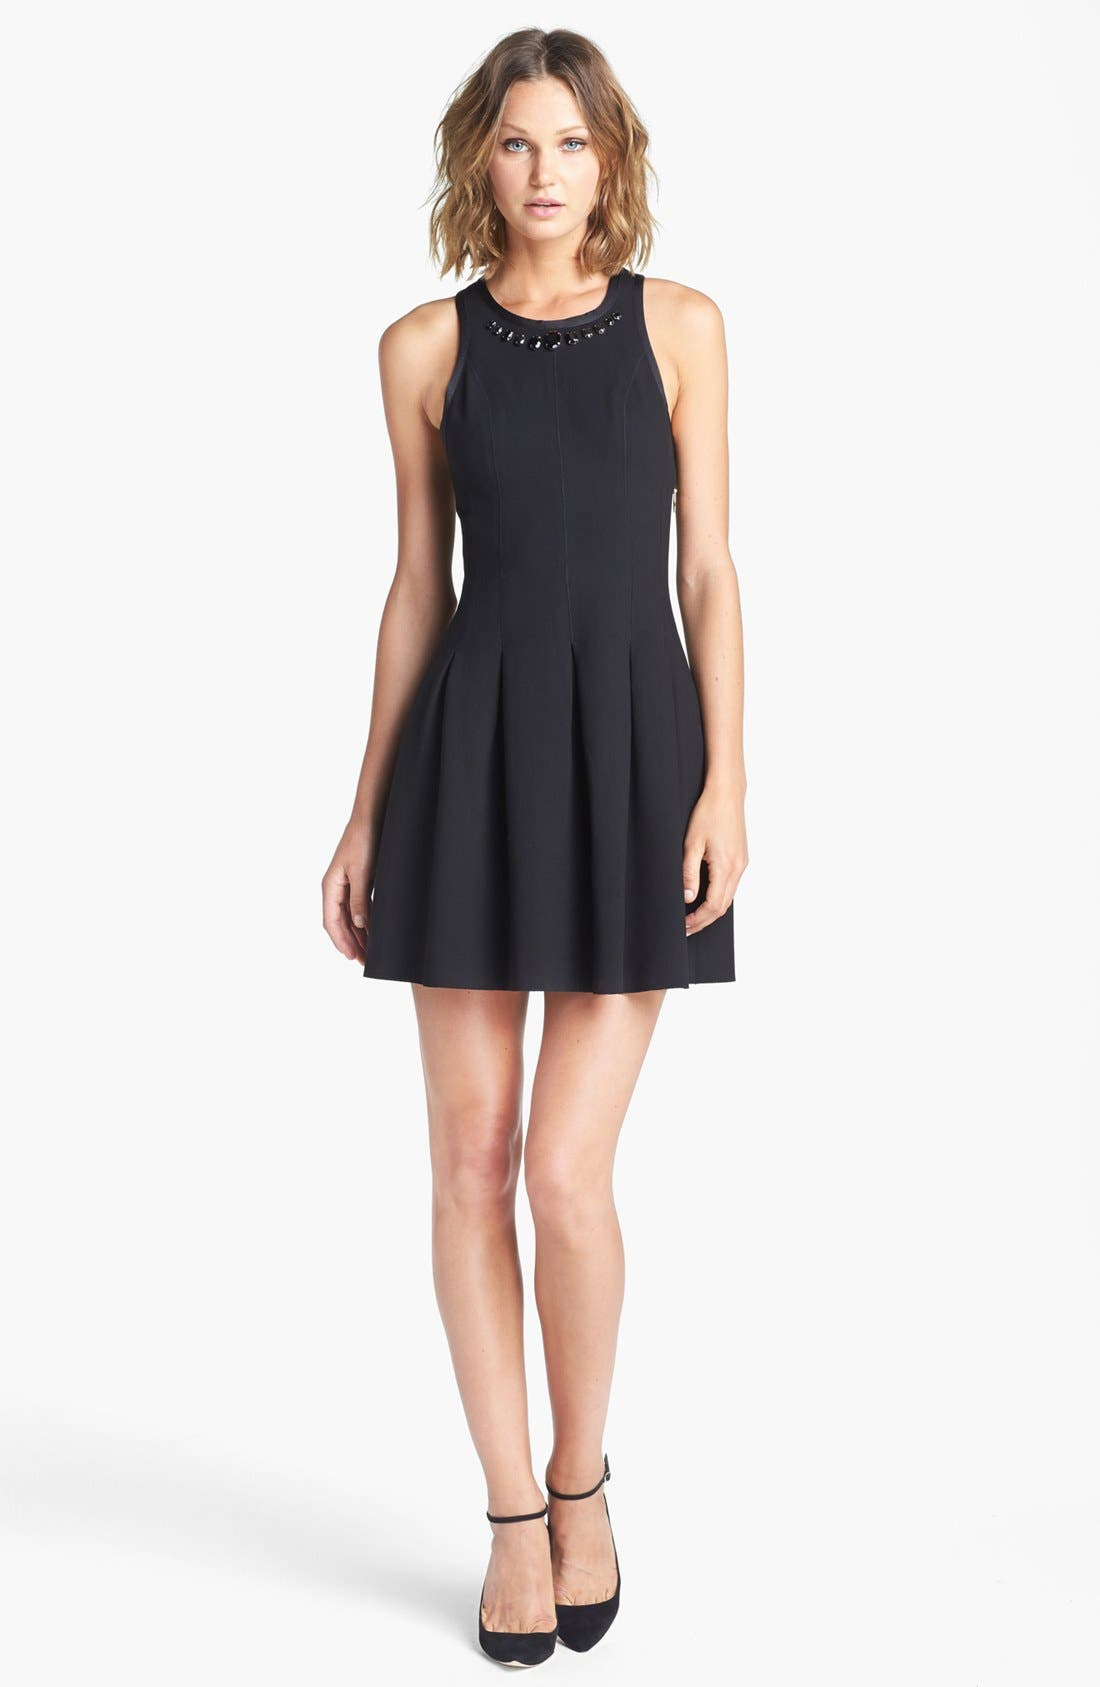 Alternate Image 1 Selected - Juicy Couture Fit & Flare Dress